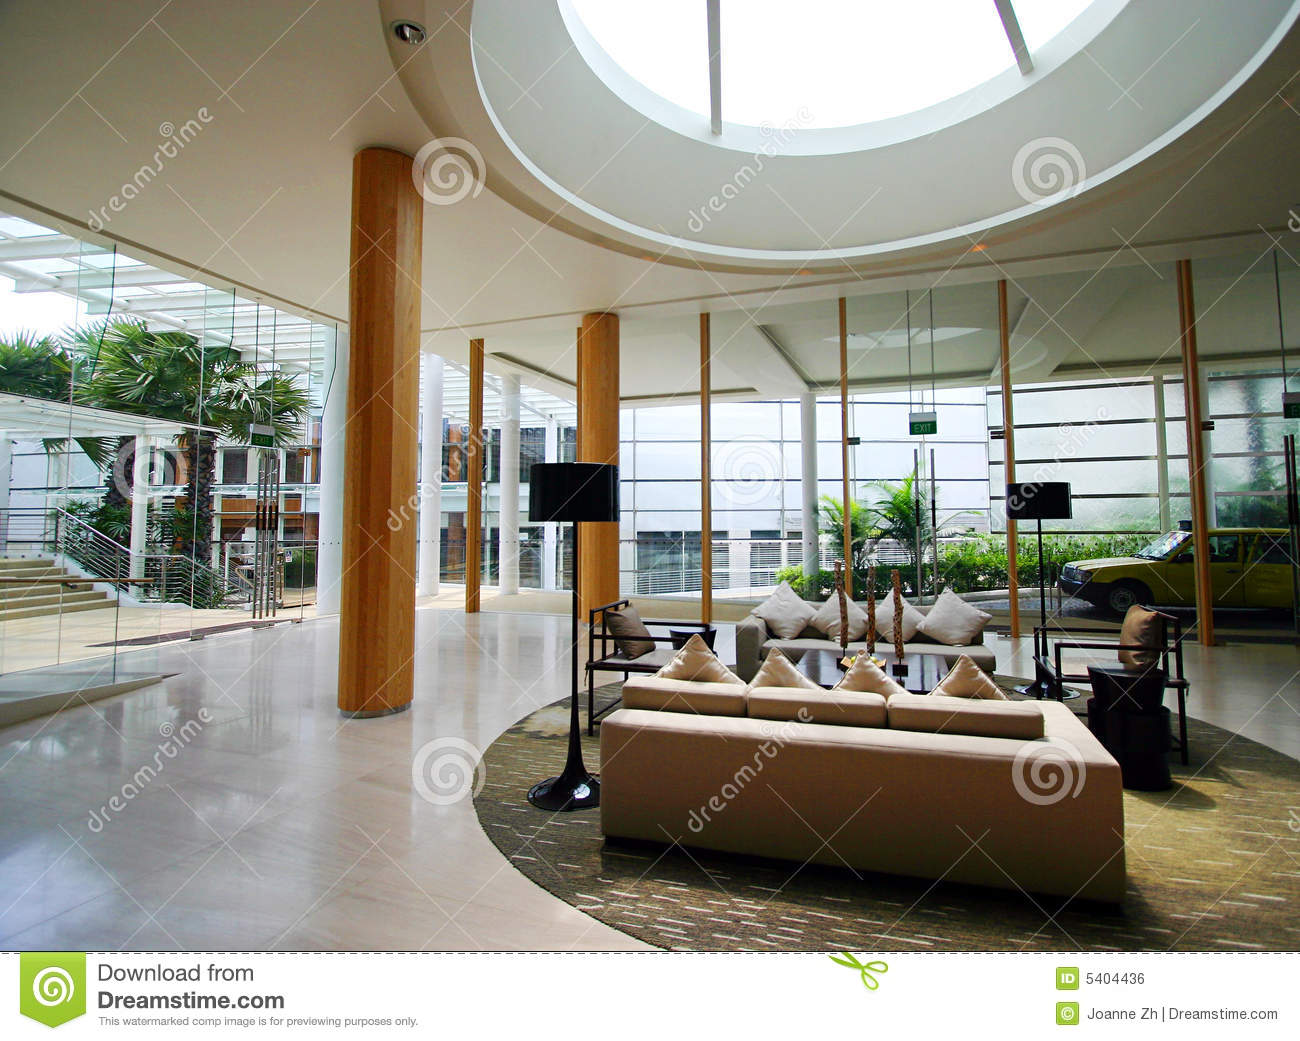 Modern Resort Interior Royalty Free Stock Image Image 5404436